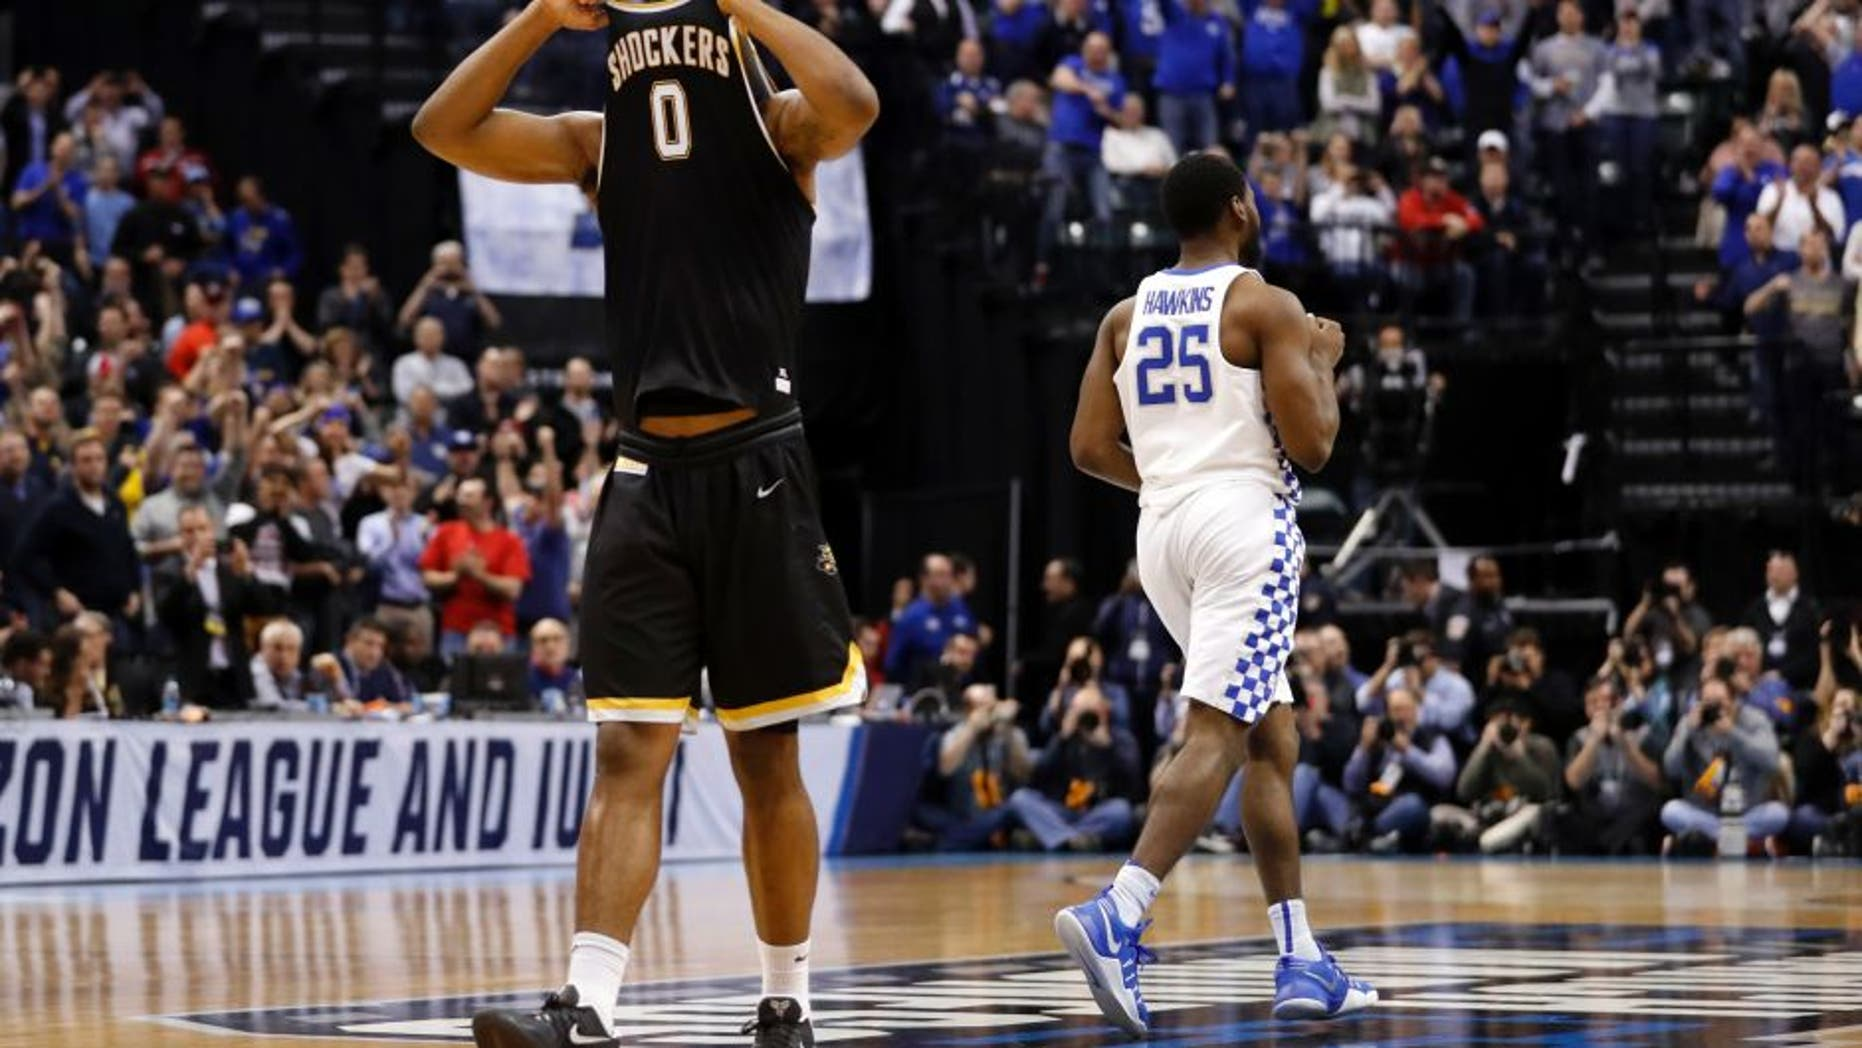 Wichita State's Rashard Kelly (0) hides his face as Kentucky's Dominique Hawkins (25) heads to celebrates with his teammates following a second-round game in the men's NCAA college basketball tournament Sunday, March 19, 2017, in Indianapolis. Kentucky won 65-62. (AP Photo/Jeff Roberson)